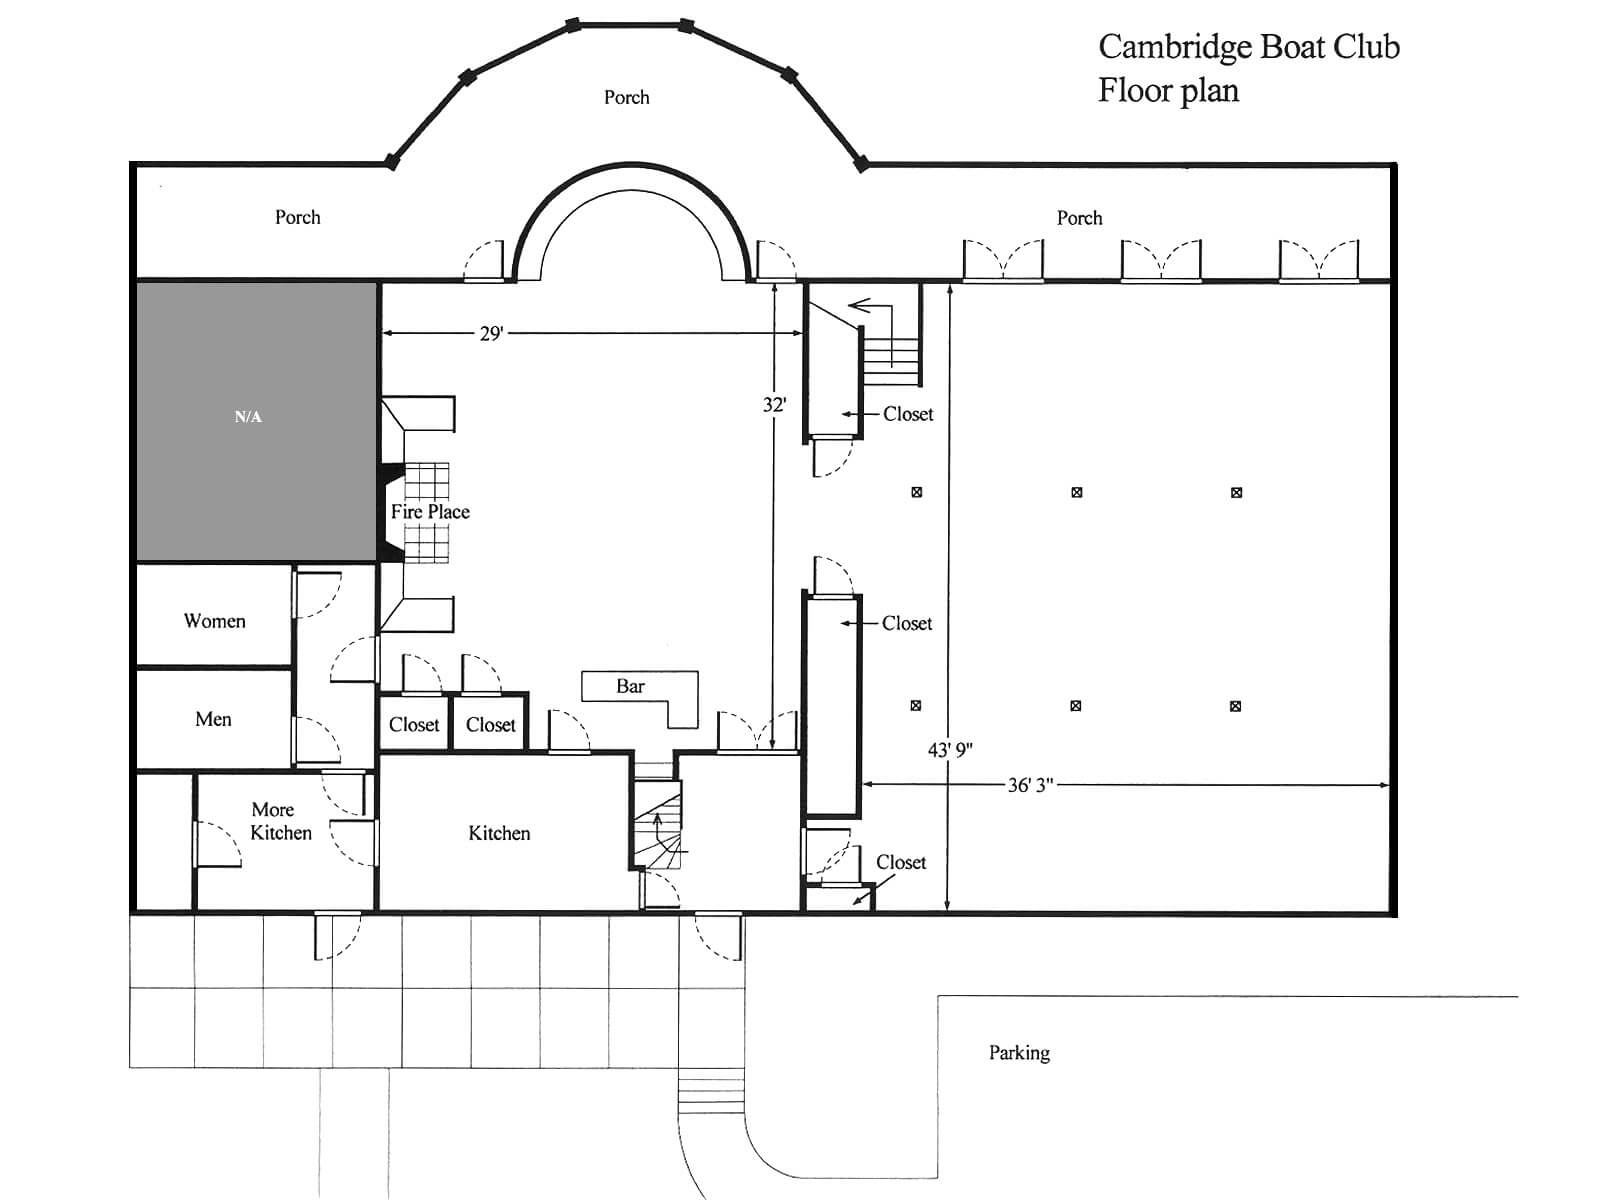 Floor plan of the cambridge boat club cambridge boat club for Floor plane